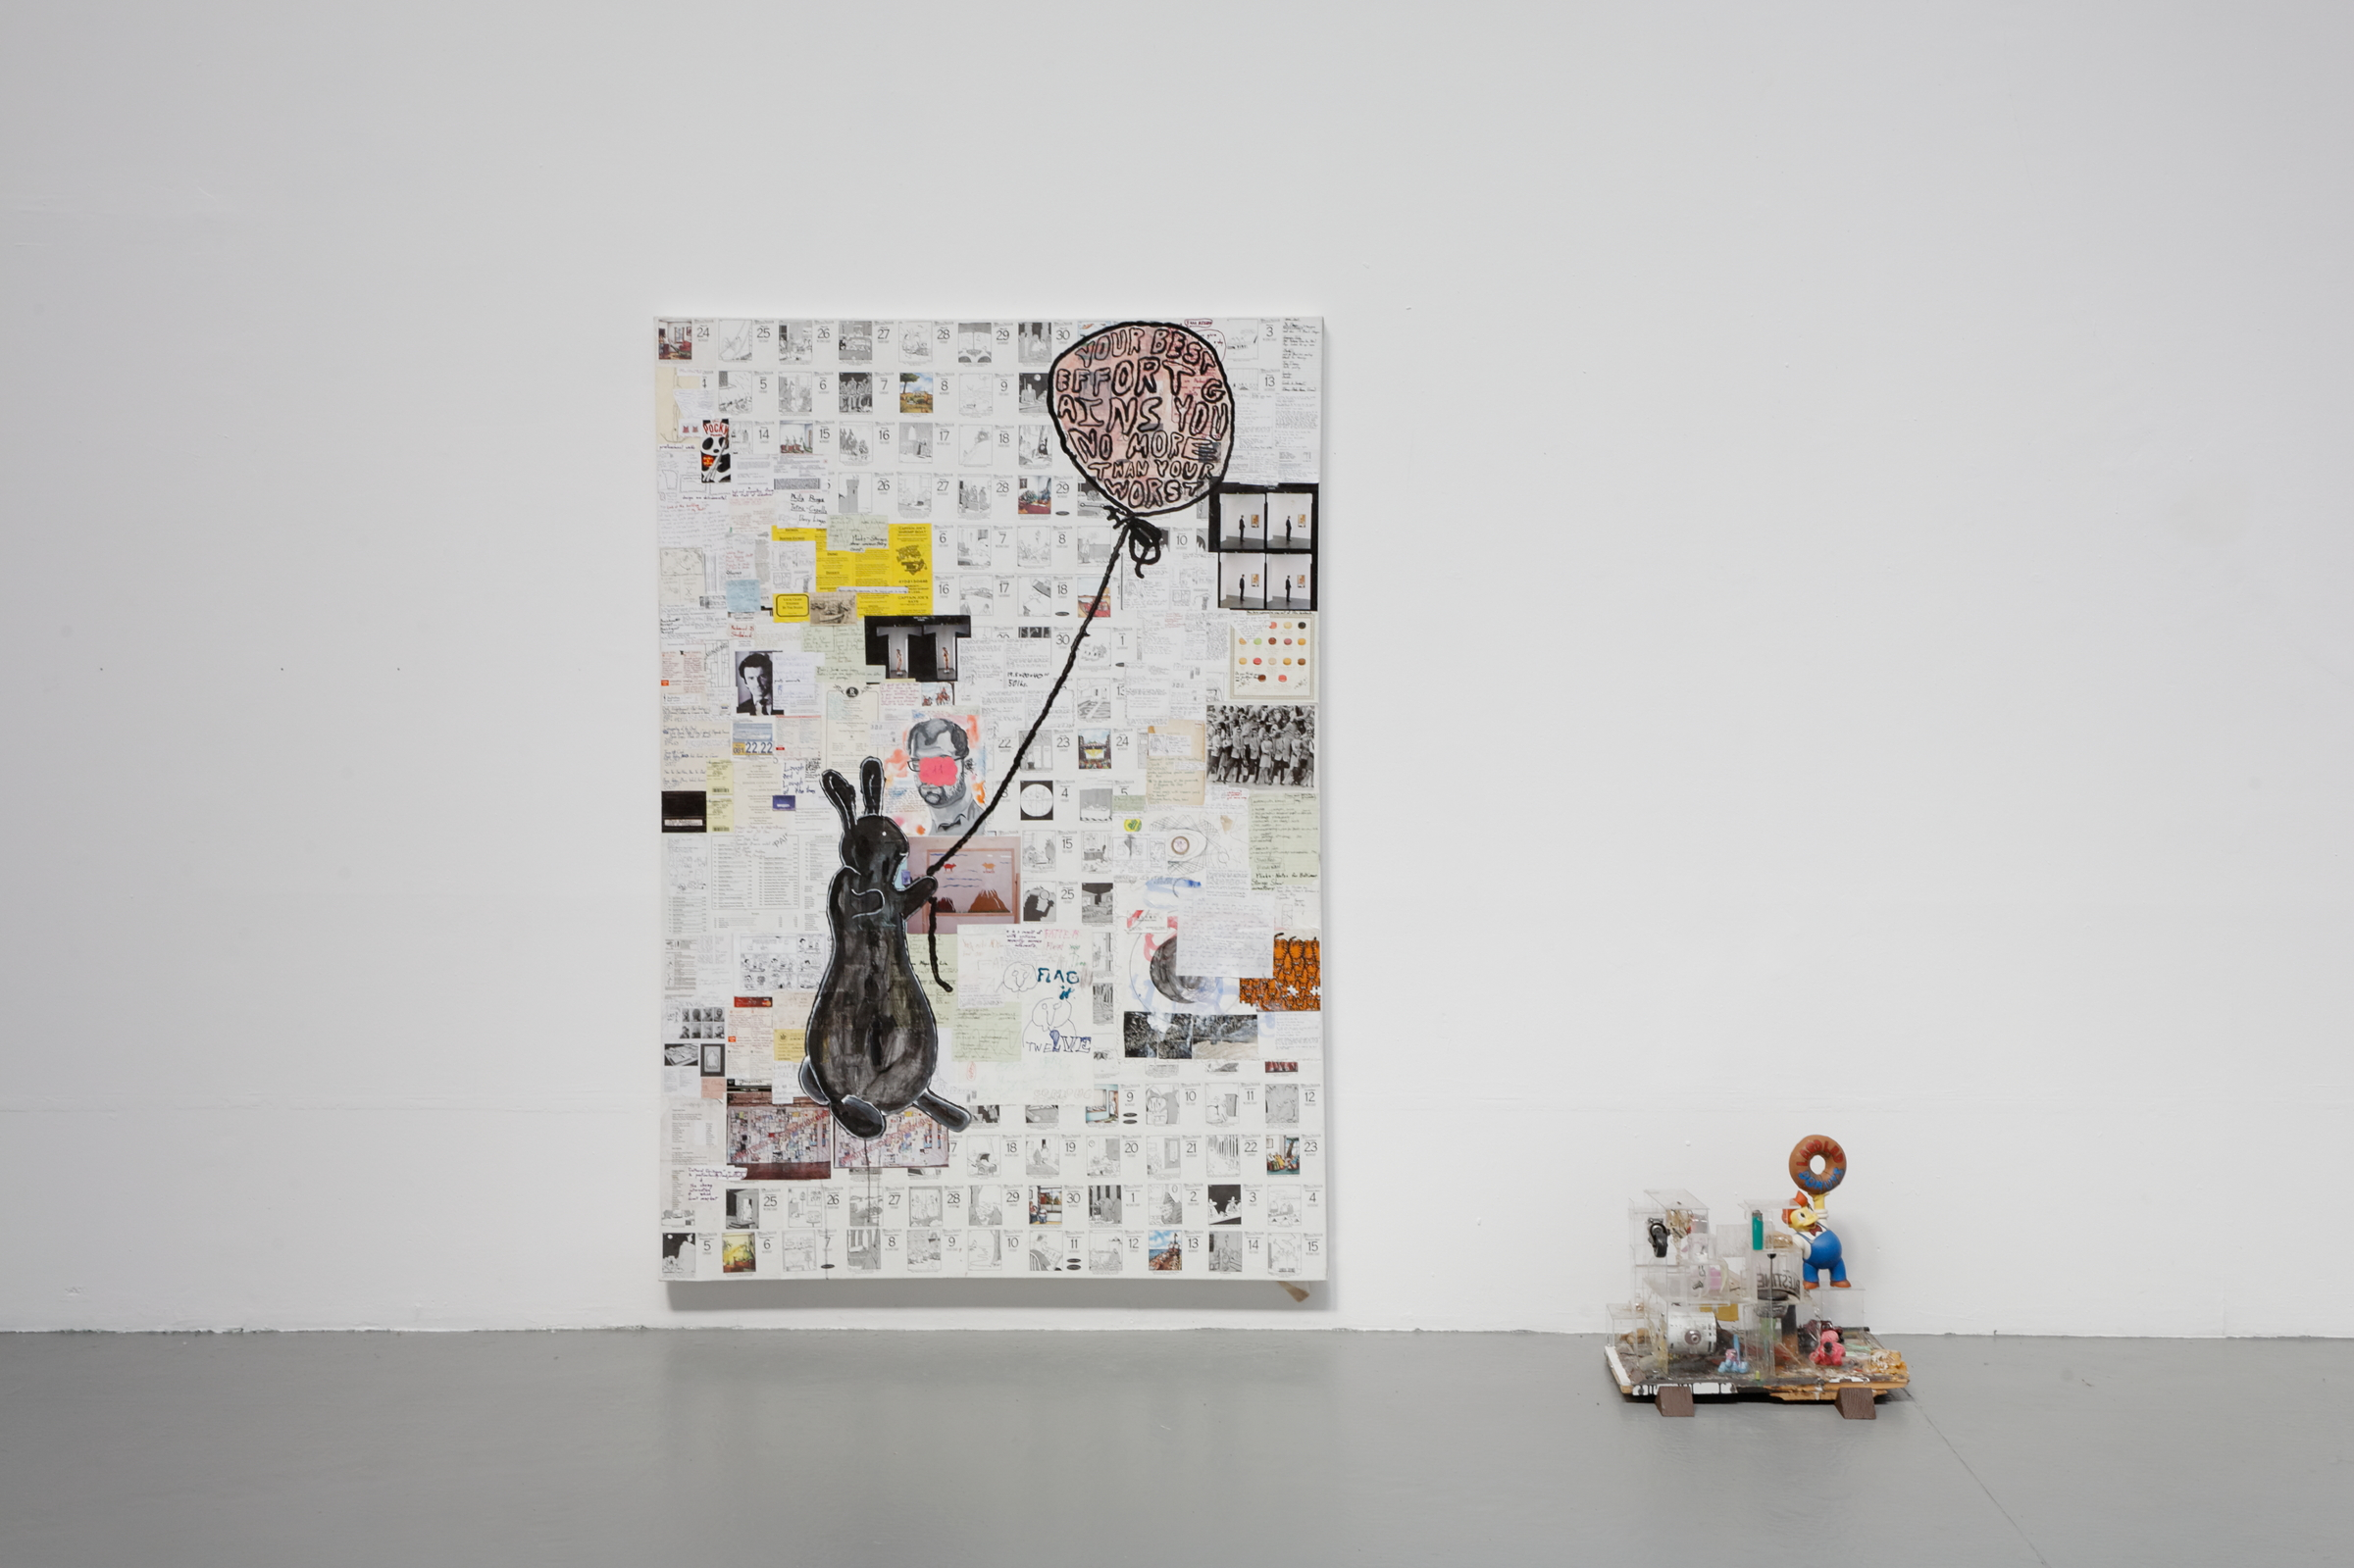 Justin Lieberman, Pat the Bunny Pop. 1280 (Super Supplemental), 2011, mixed media on canvas, 85 x 61.5 in; Storygon Studio Model, 2012, mixed media, dimensions variable